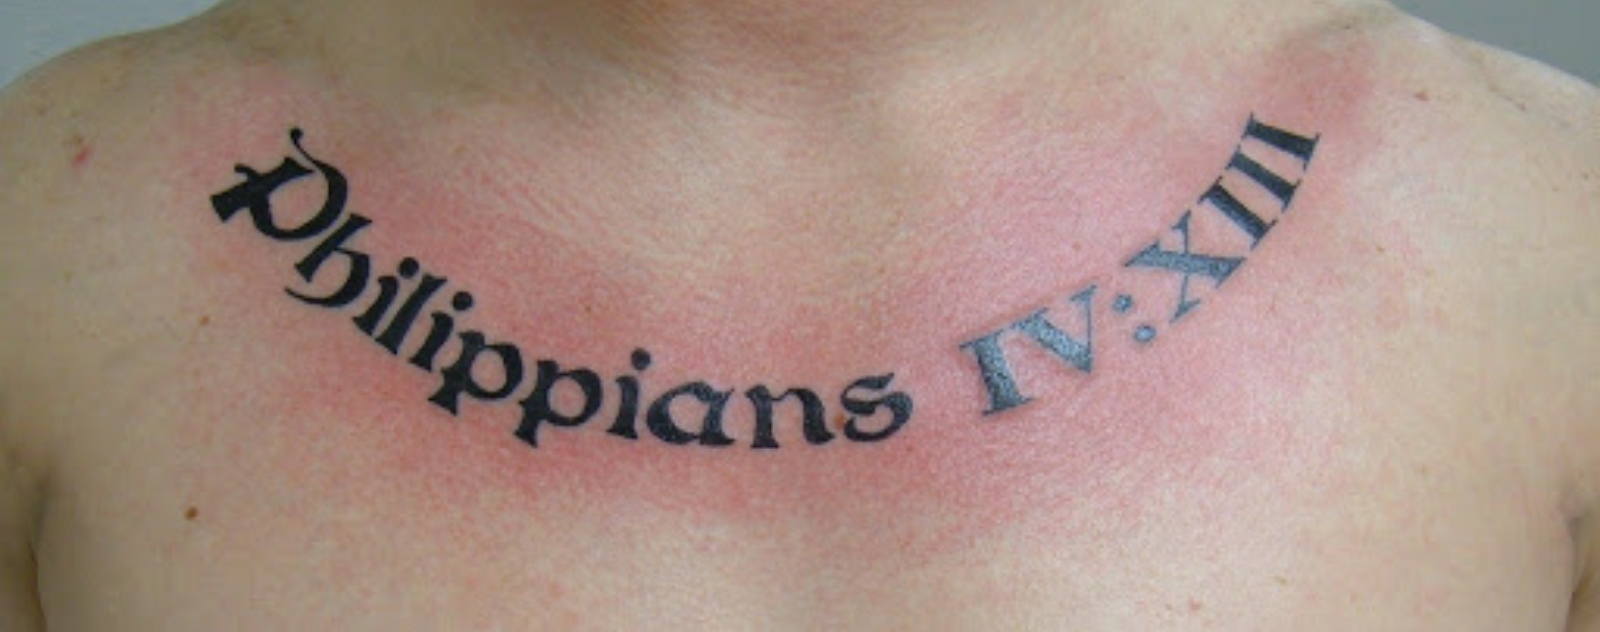 philippians-4-13-tattoo-chest-4